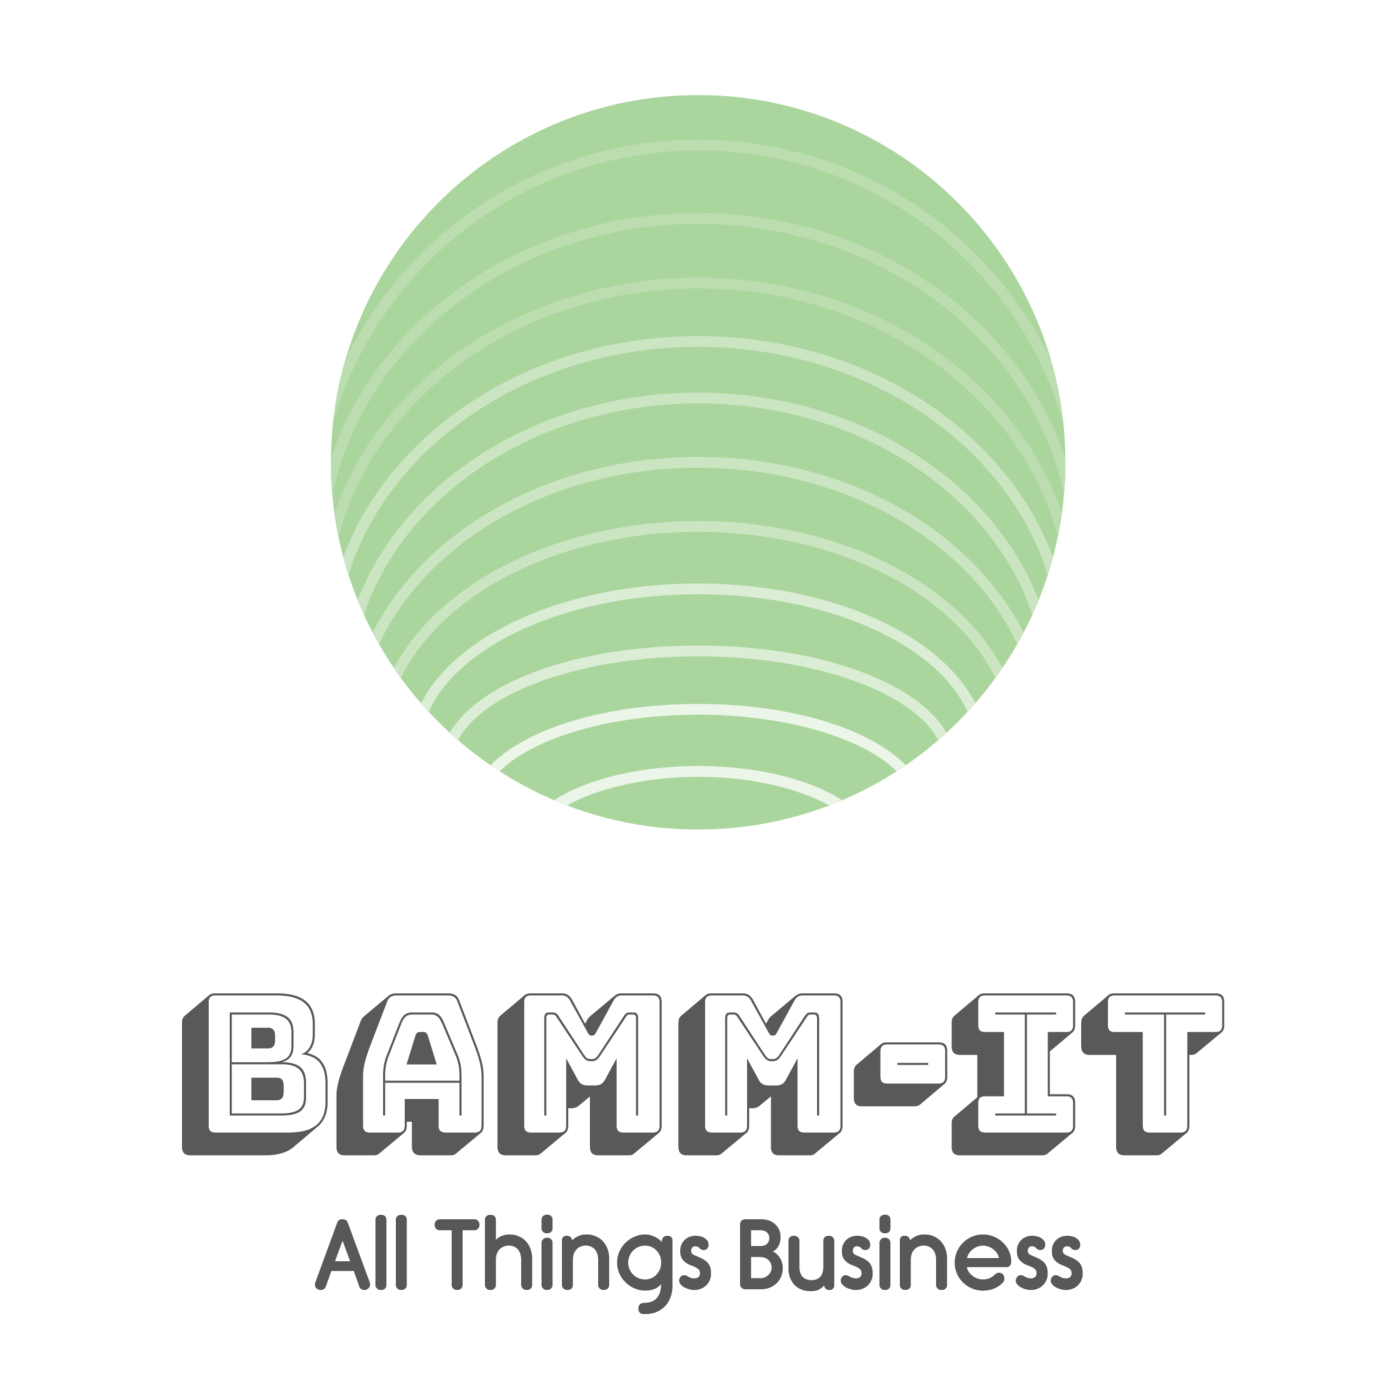 BAMM-IT: All Things Business show art